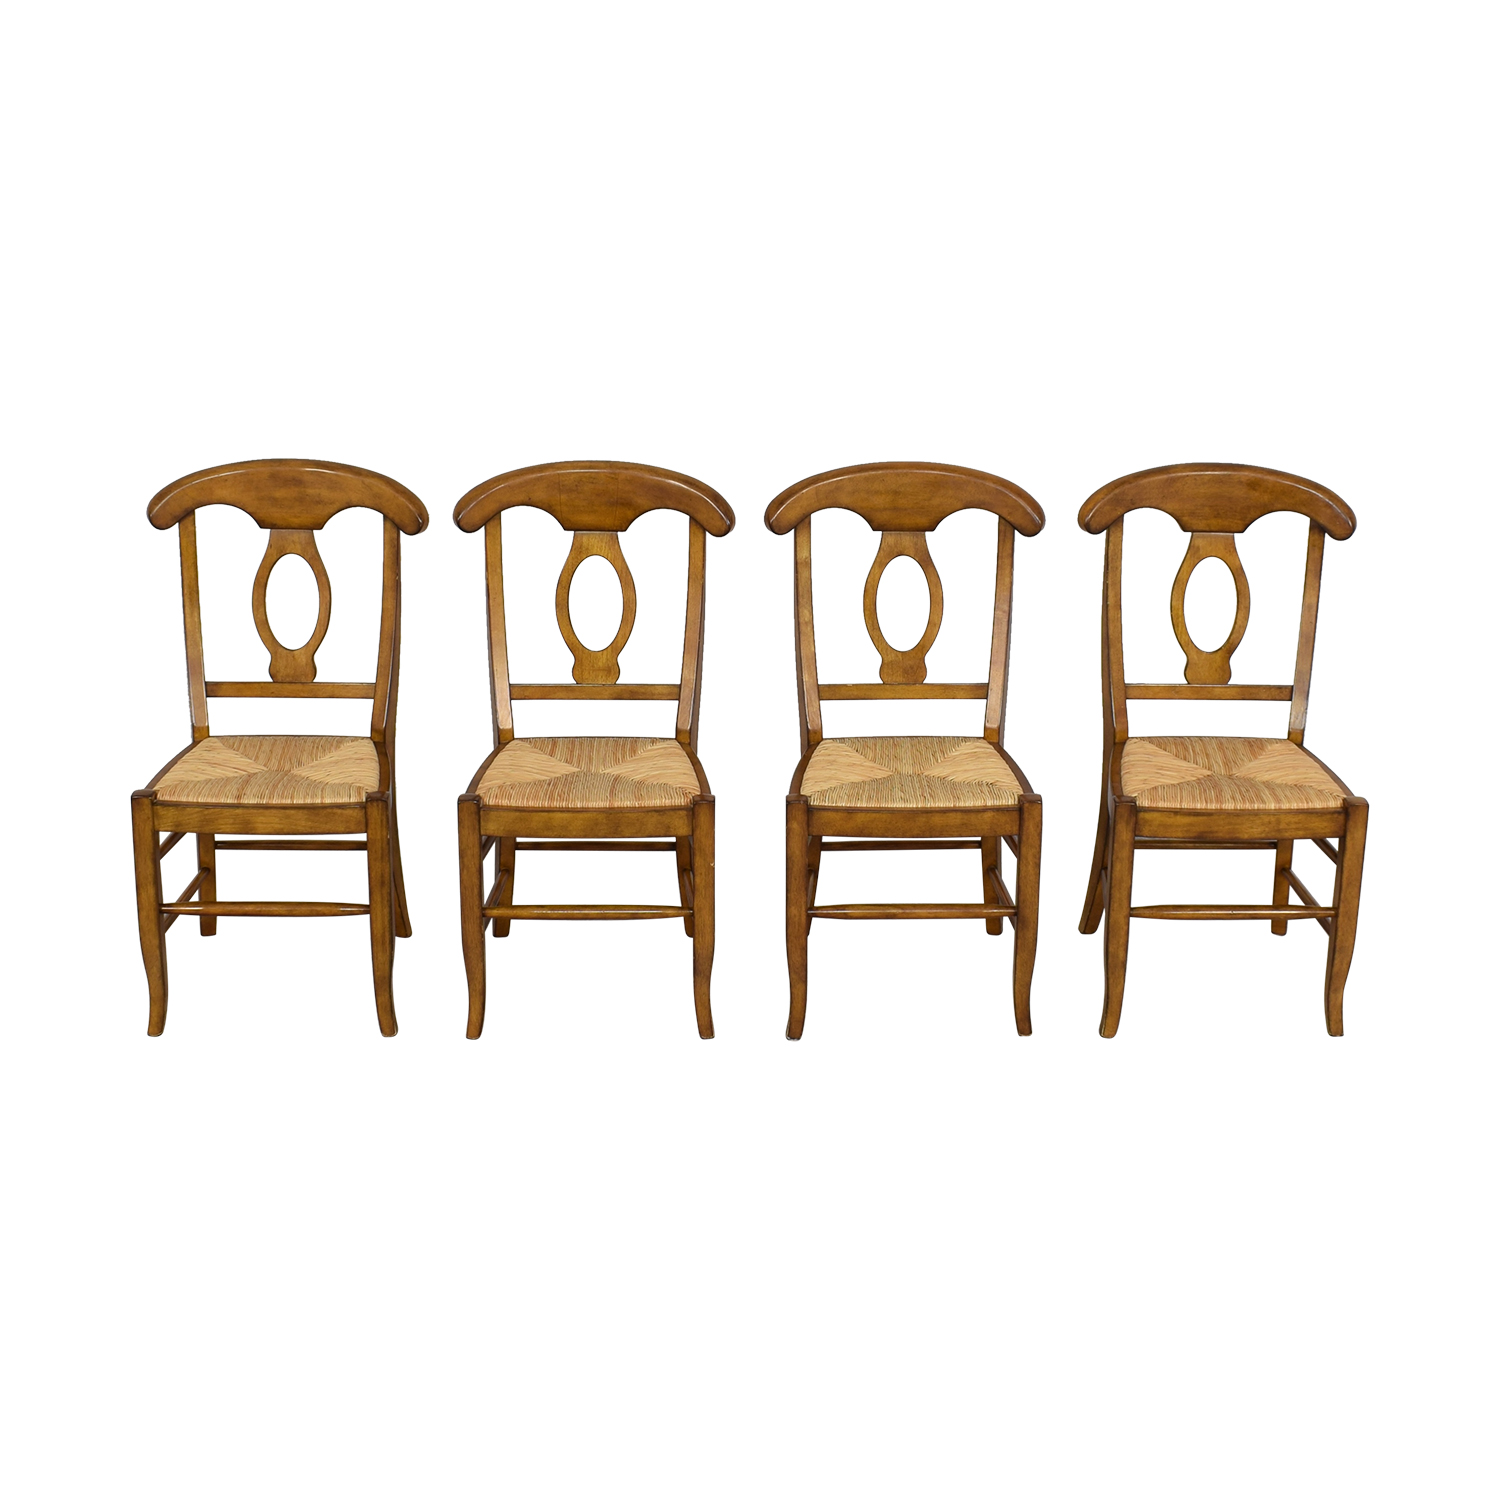 Pottery Barn Pottery Barn Dining Chairs for sale